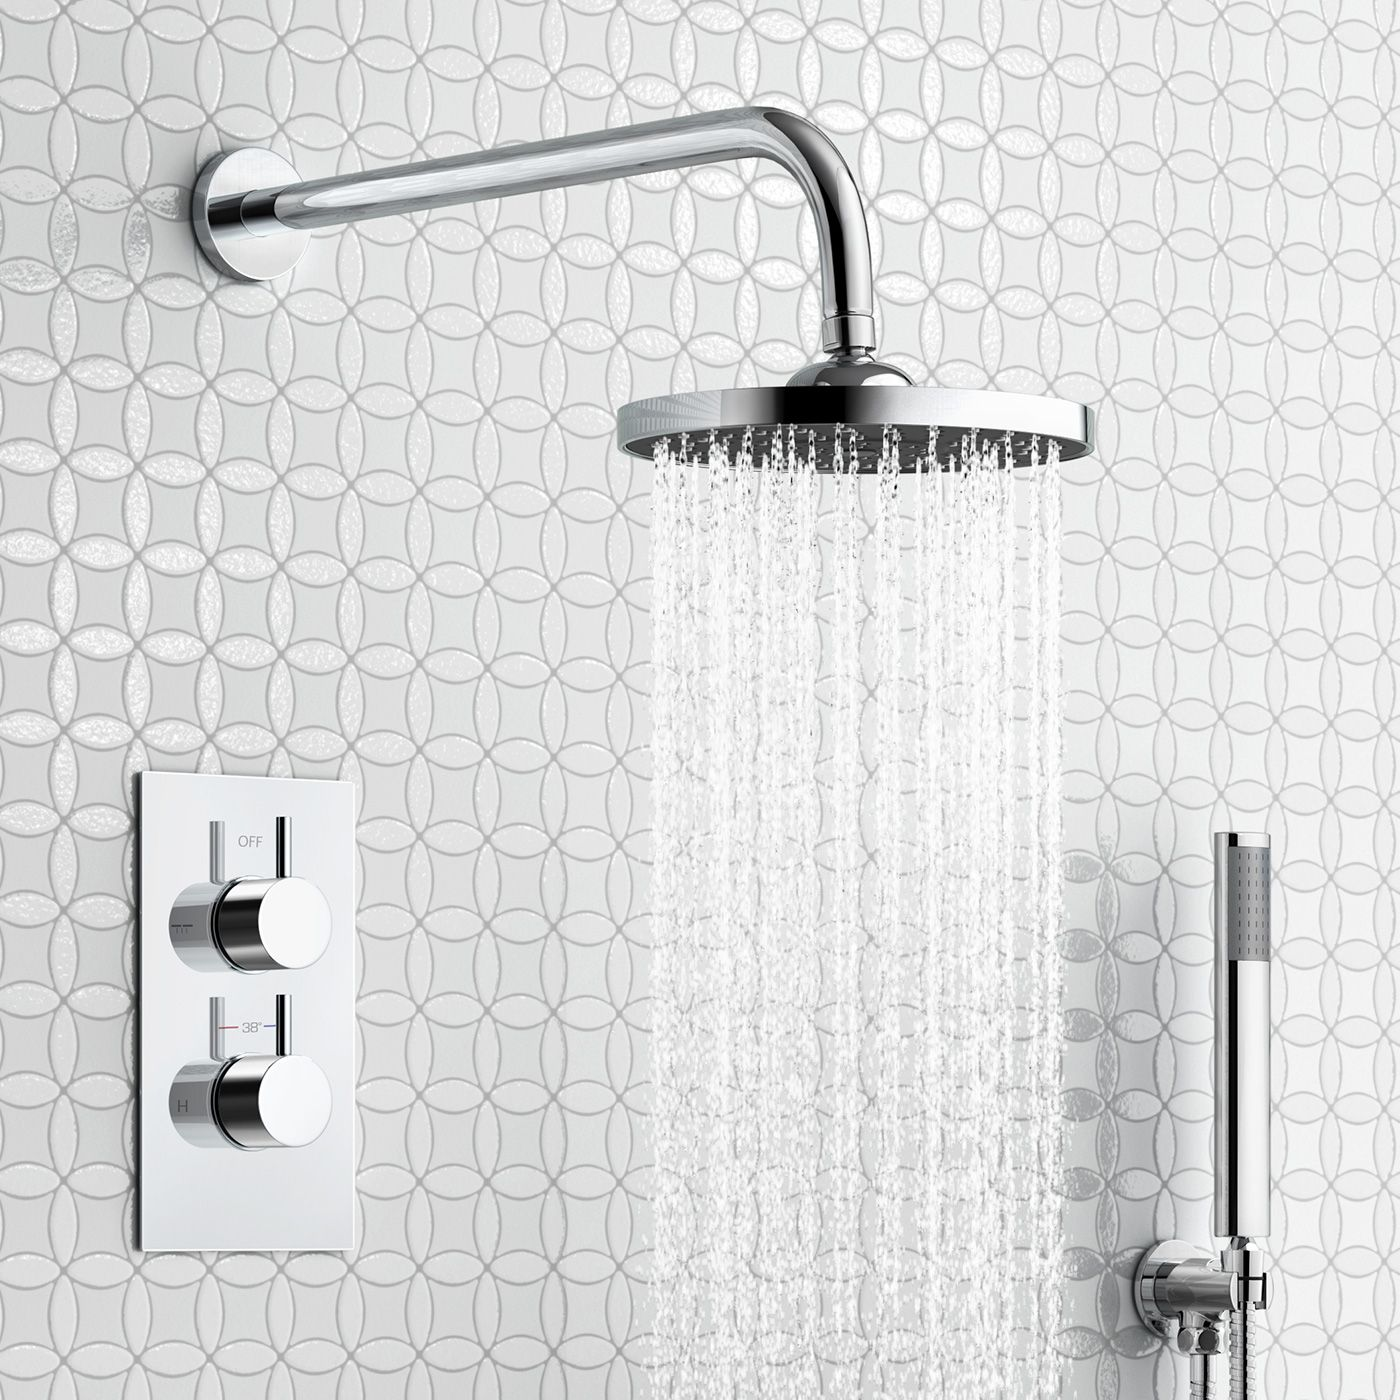 200mm Round Wall Mounted Head, Handheld & Thermostatic Mixer Shower ...